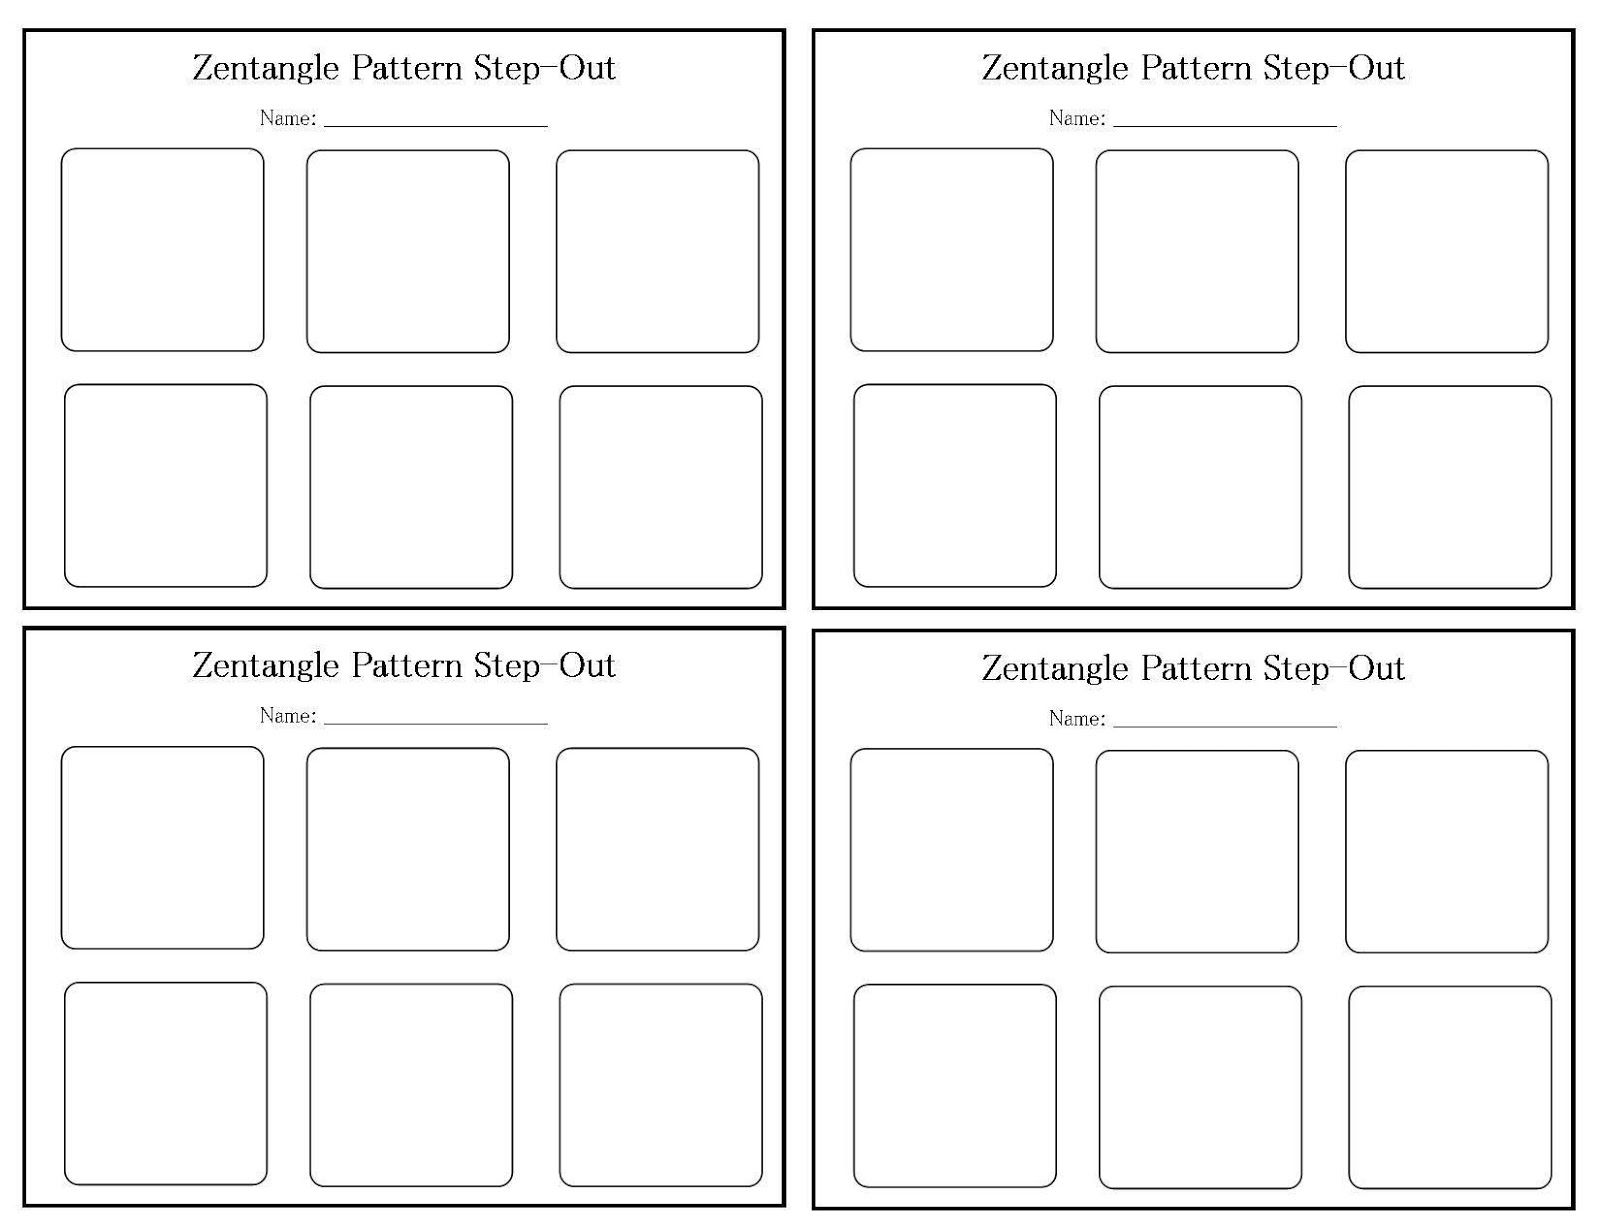 zentangle patterns for beginners my blank step out template for zentangle patterns. Black Bedroom Furniture Sets. Home Design Ideas